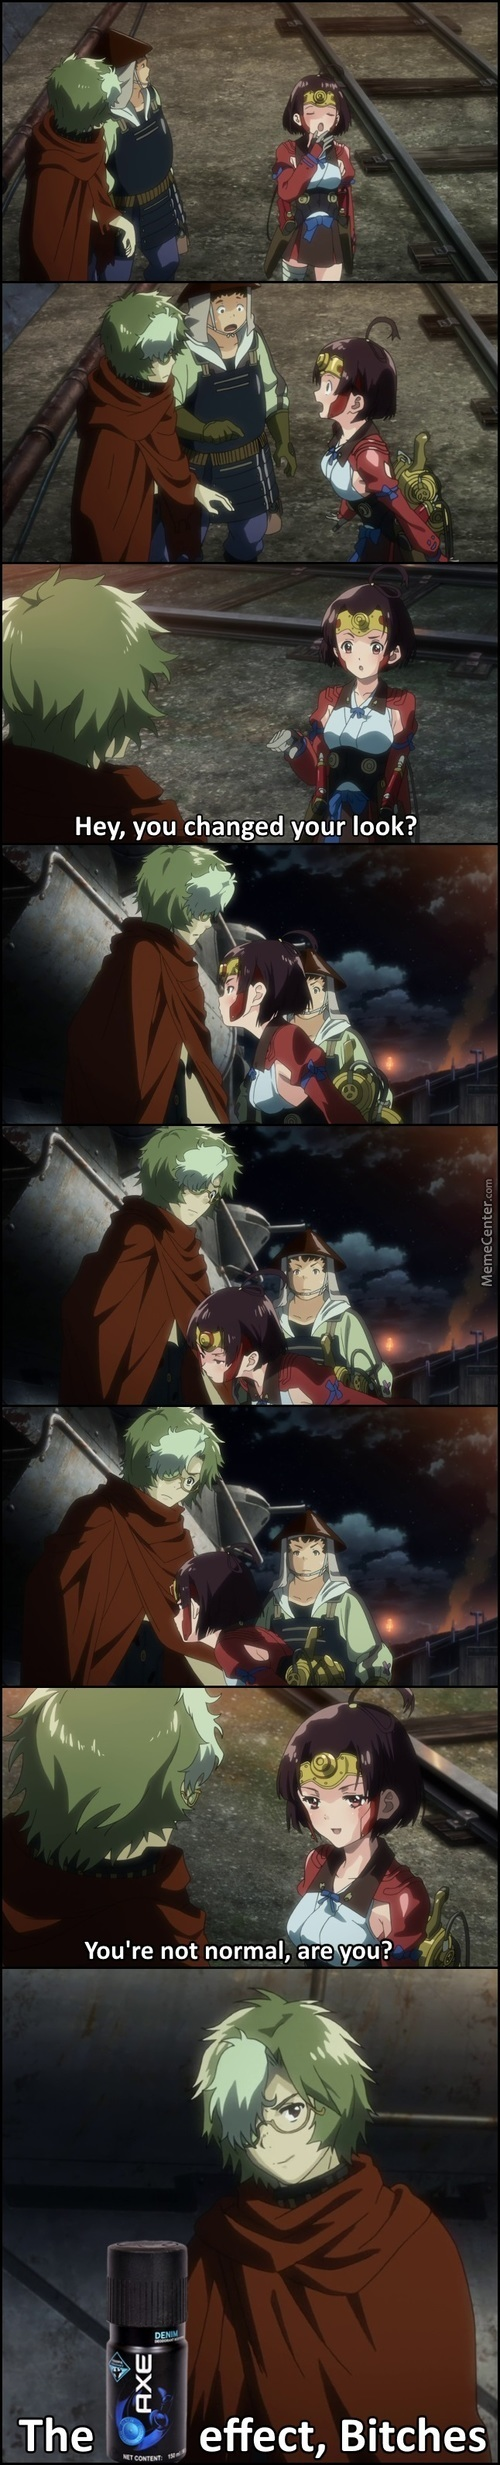 How I Met Your Mother - Kabaneri Of The Iron Fortress